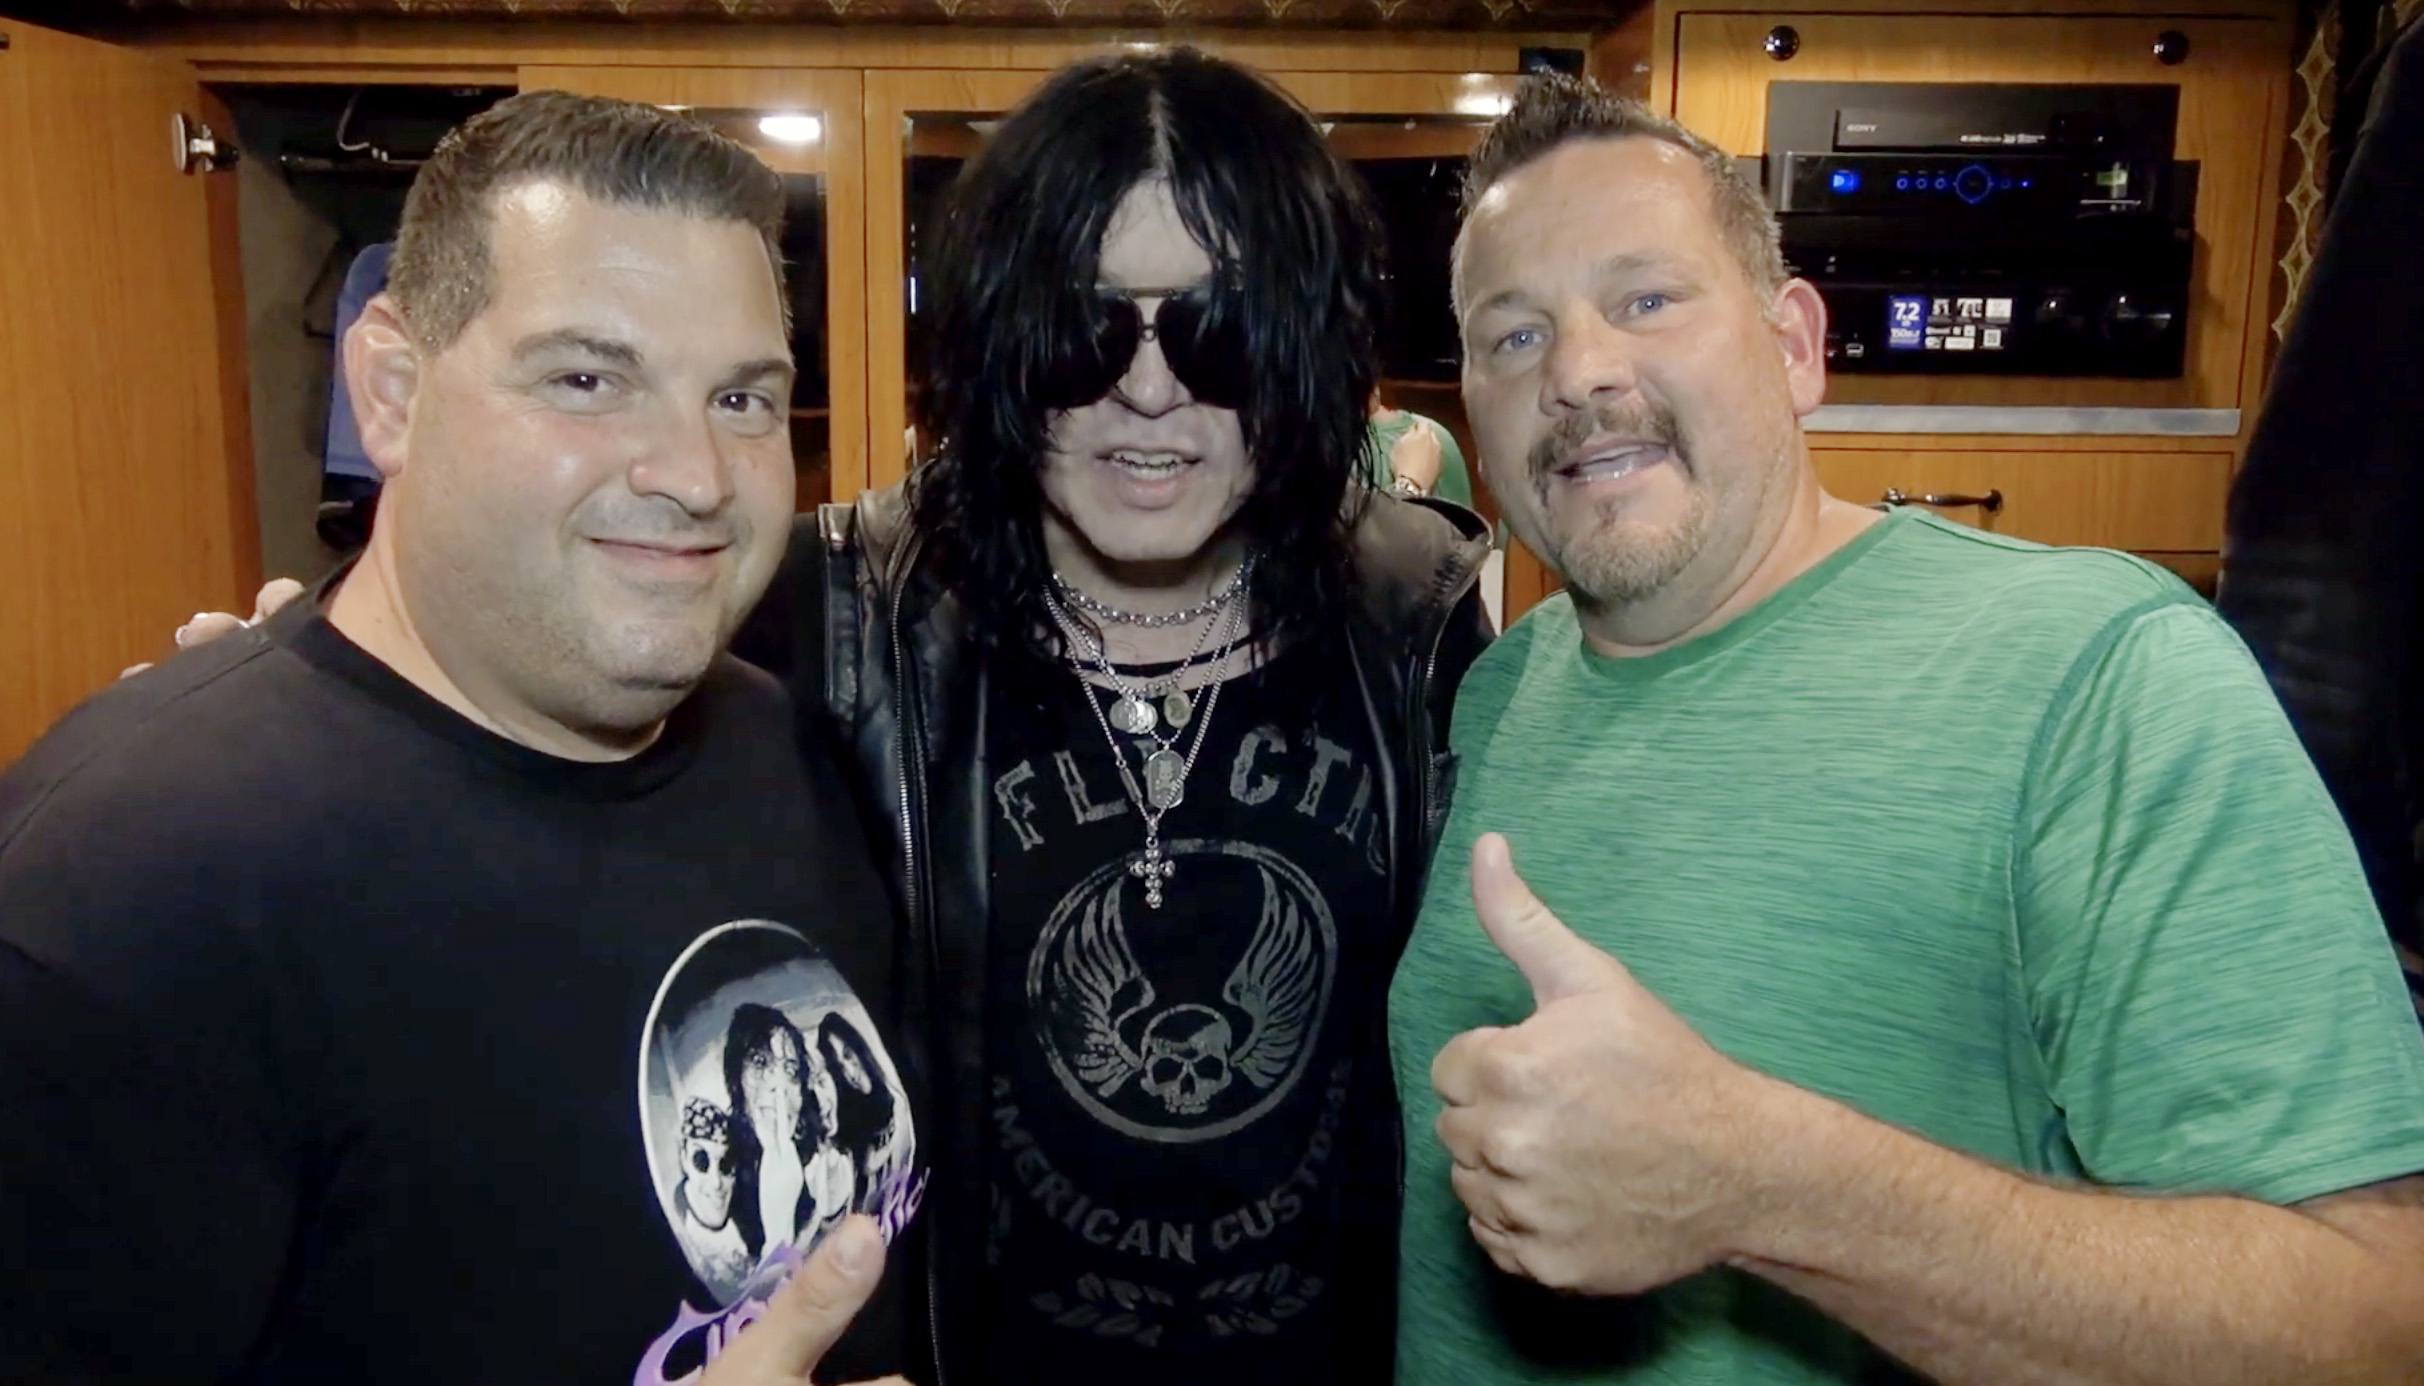 """actors -RObert Ruvolo """"CReeper"""" and Troy Burbank """"Jesse"""" with Cinderella singer Tom Keifer on his tour bus."""